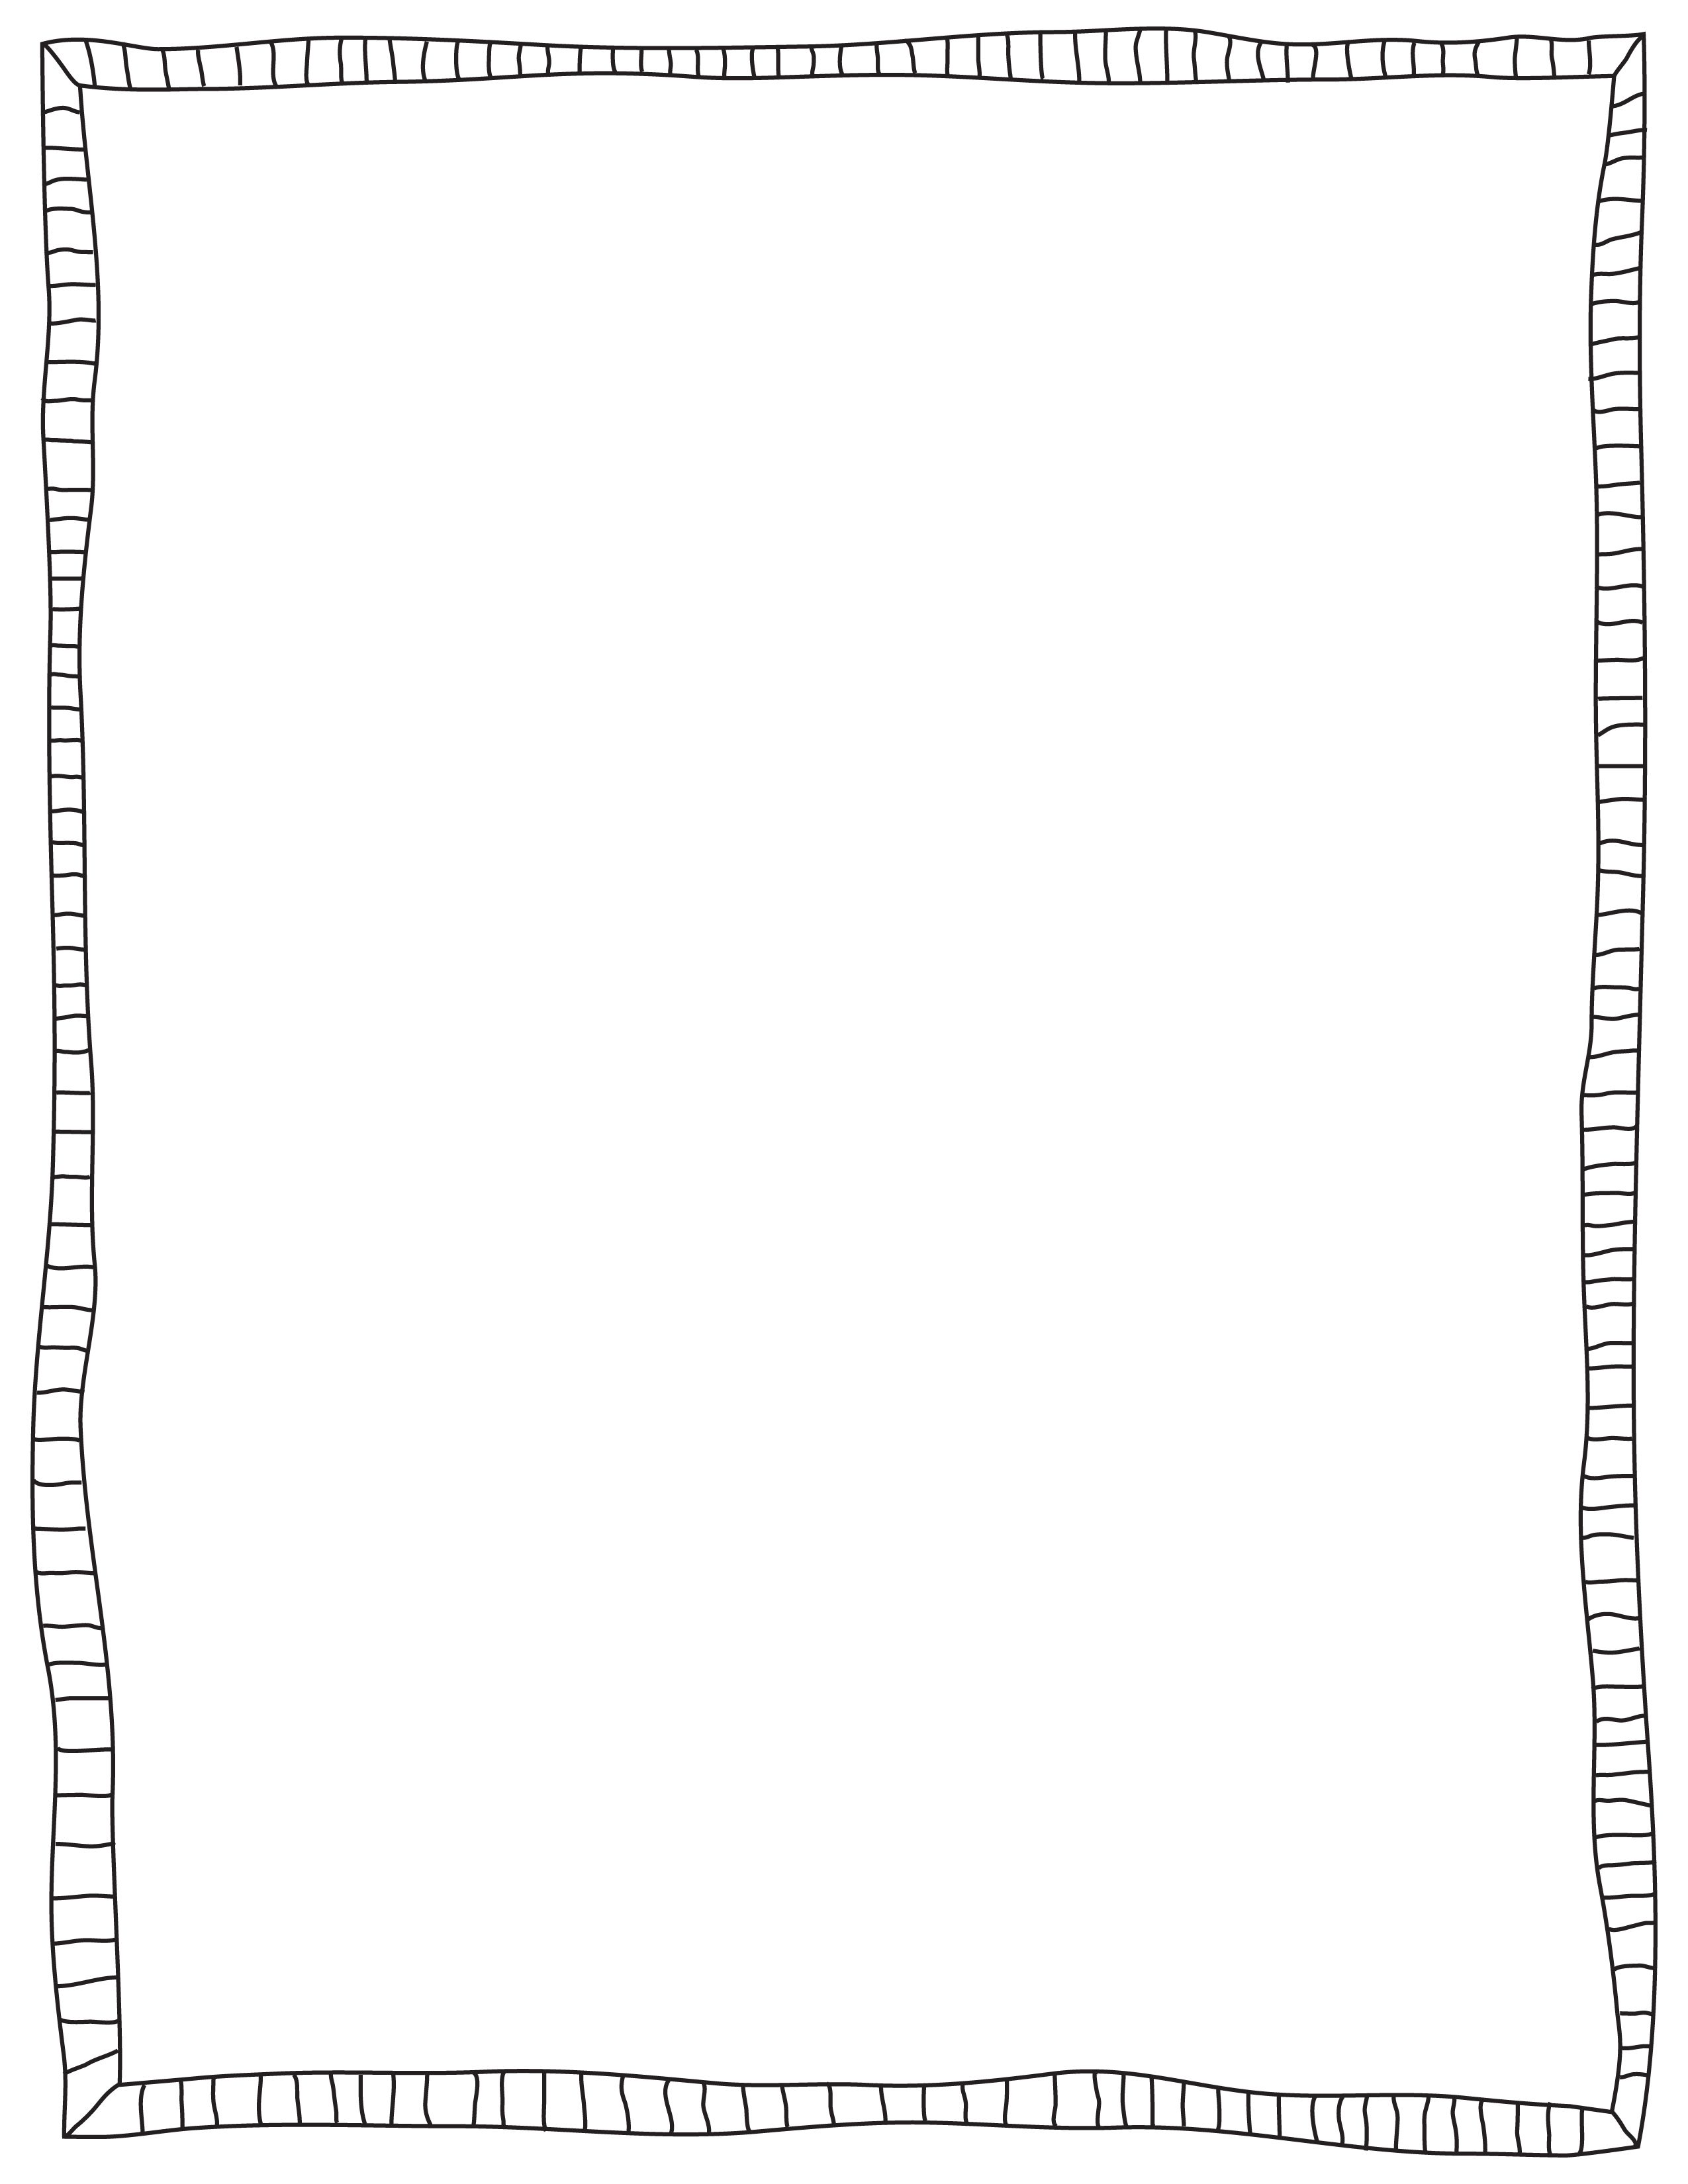 Free Border Clipart Black And White.